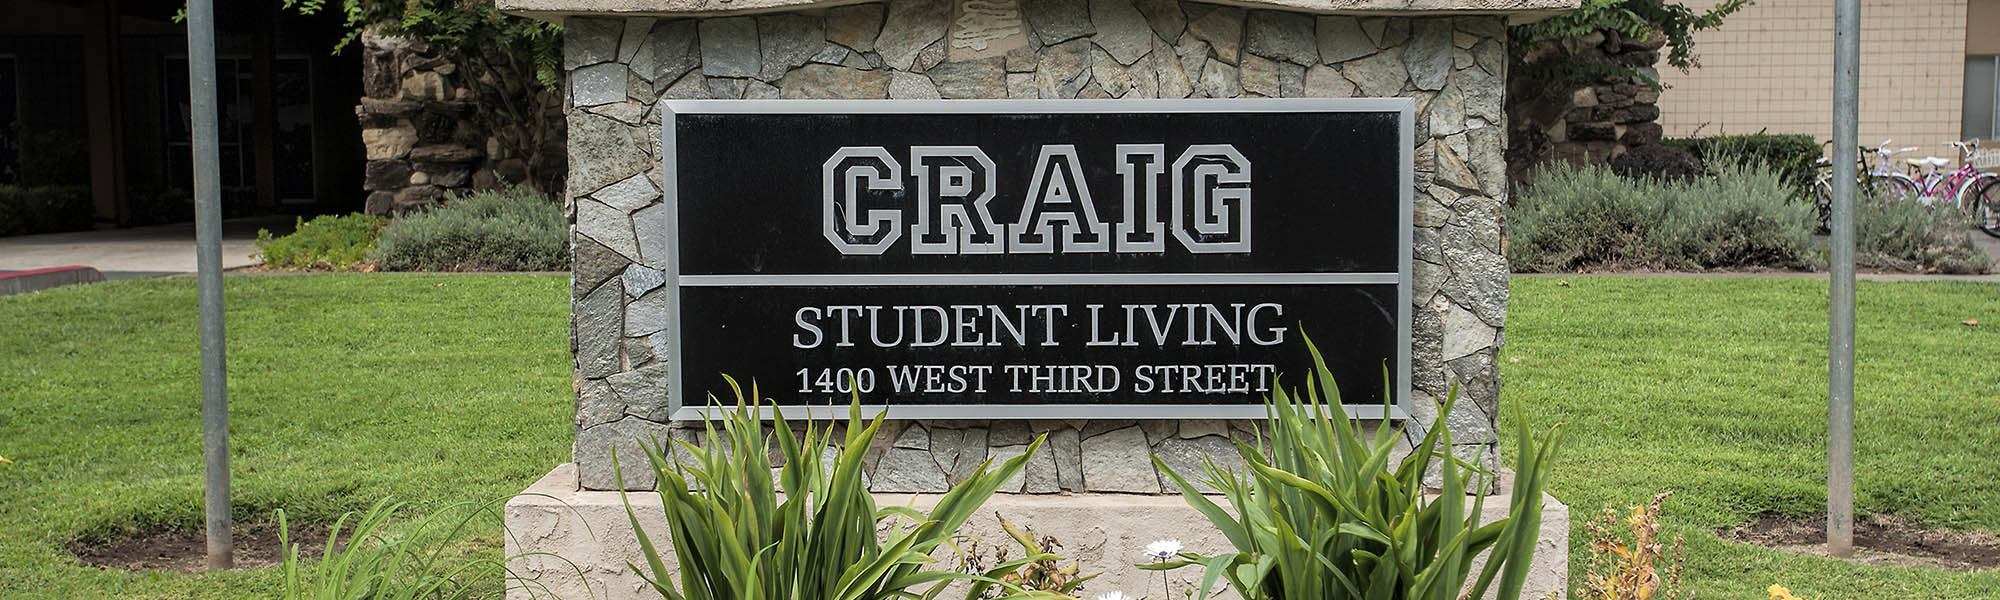 Contact Craig Student Living on our website